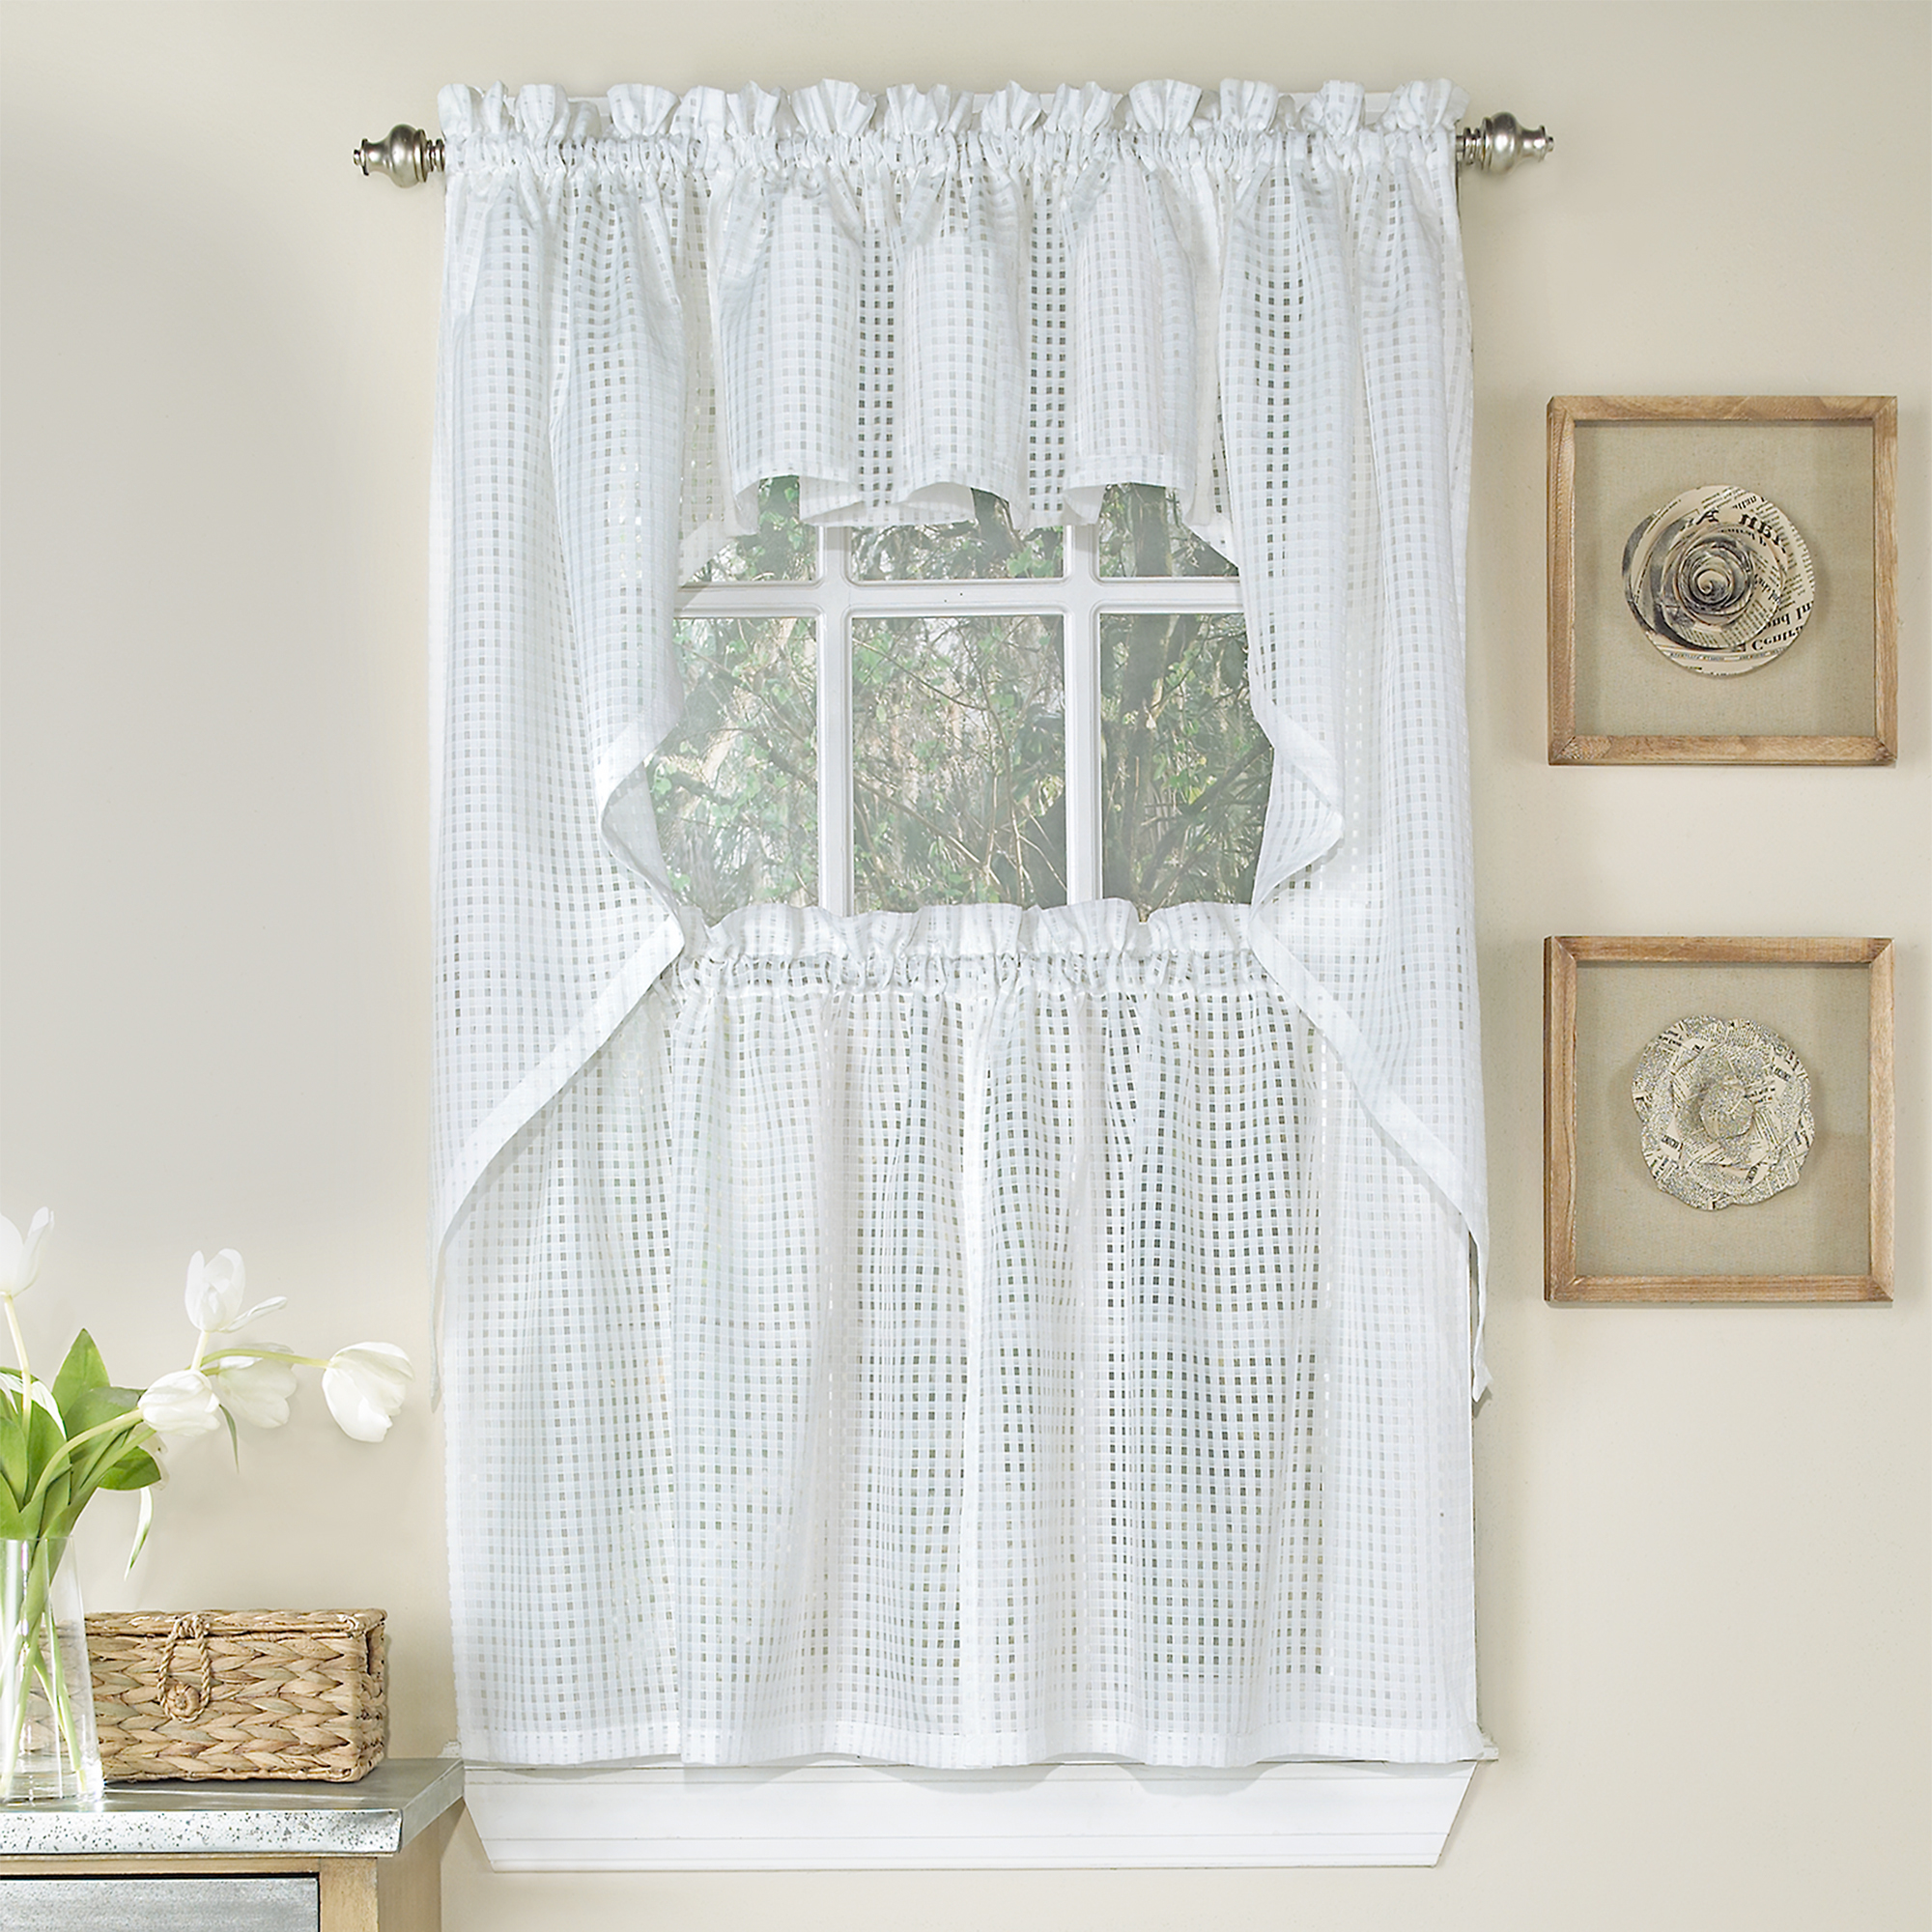 Semi Sheer Rod Pocket Kitchen Curtain Valance And Tiers Sets In Current Details About Micro Check 2 Tone White Semi Sheer Window Curtain Tiers,  Valance, Or Swag (View 11 of 20)